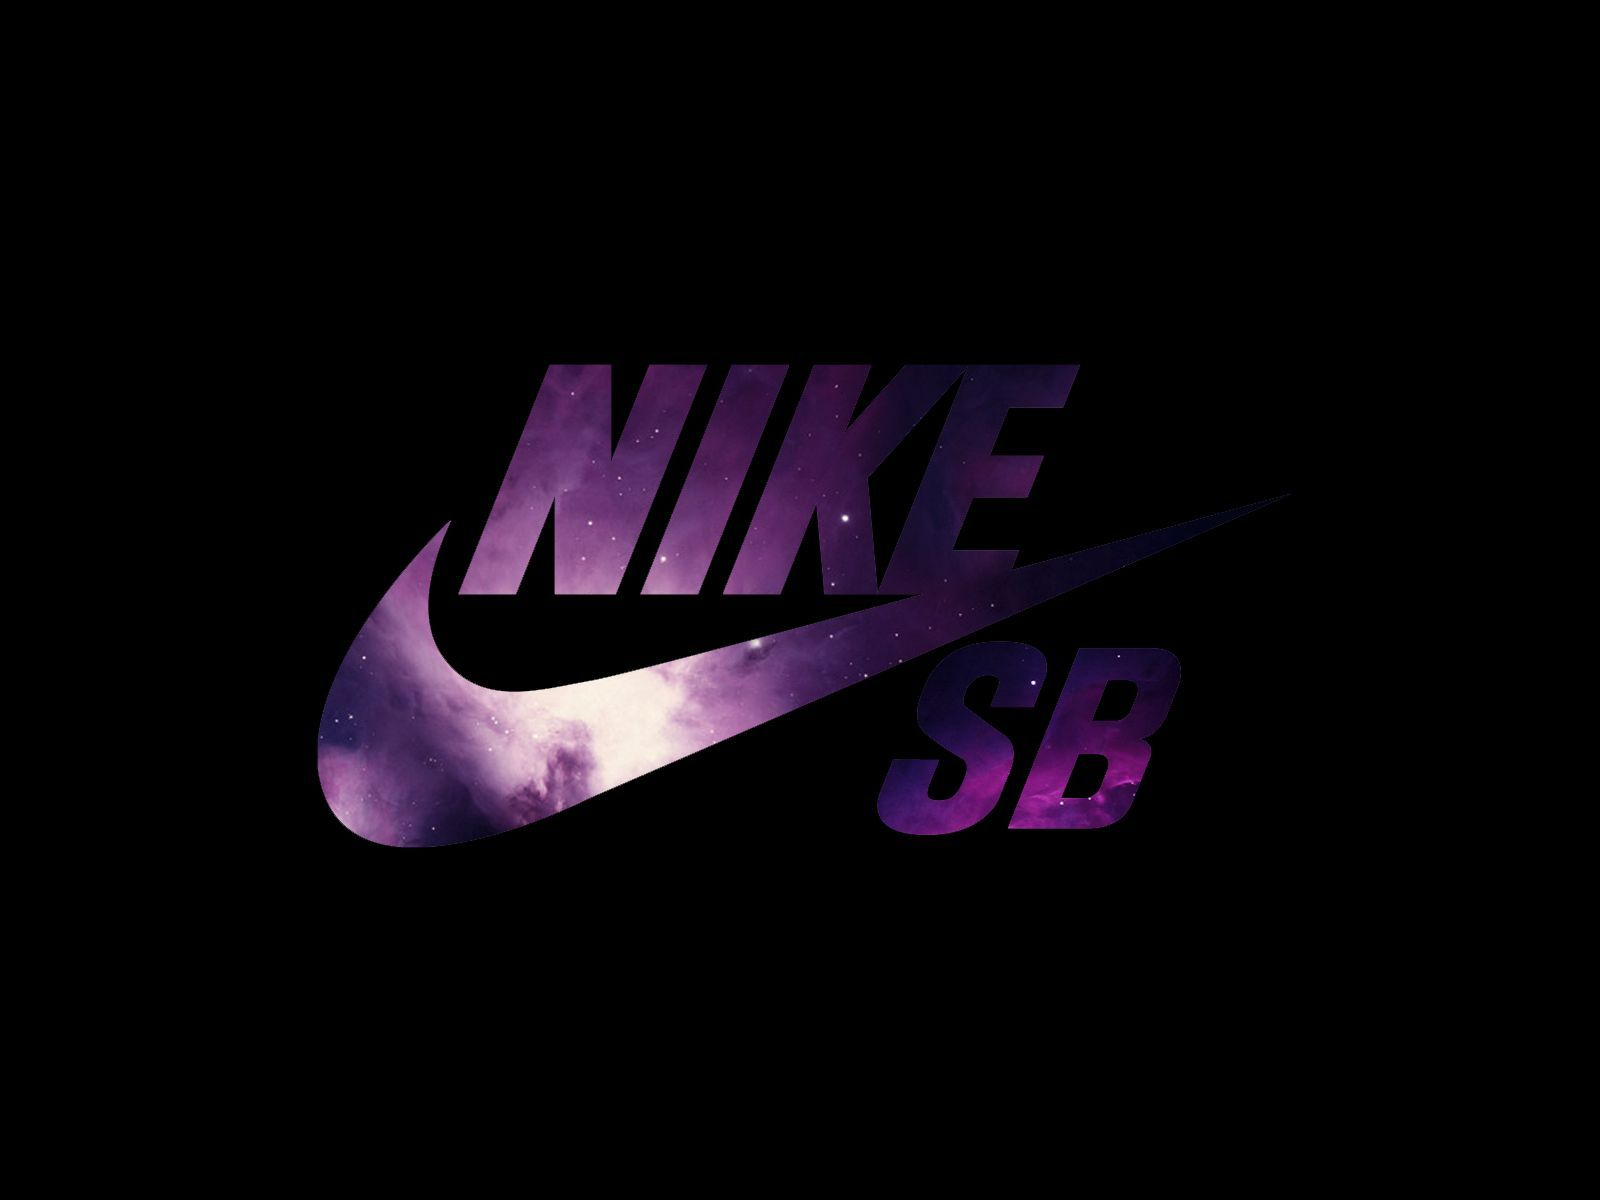 Nike Wallpaper Images Bhw Nike Wallpaper Nike Logo Wallpapers Nike Galaxy